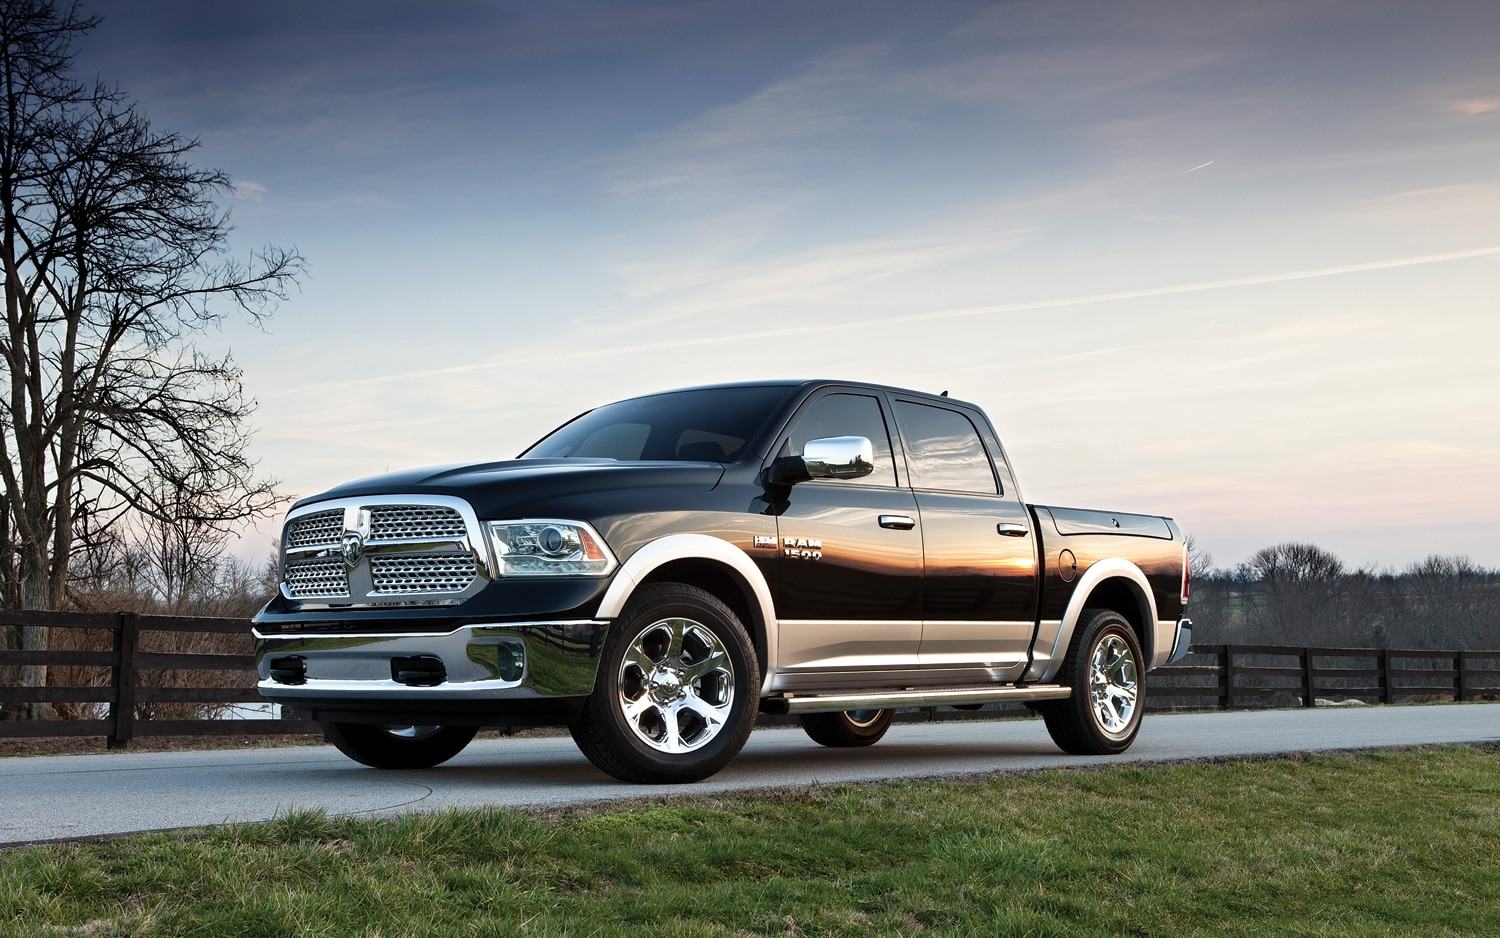 2013 Ram 1500 Facing Left